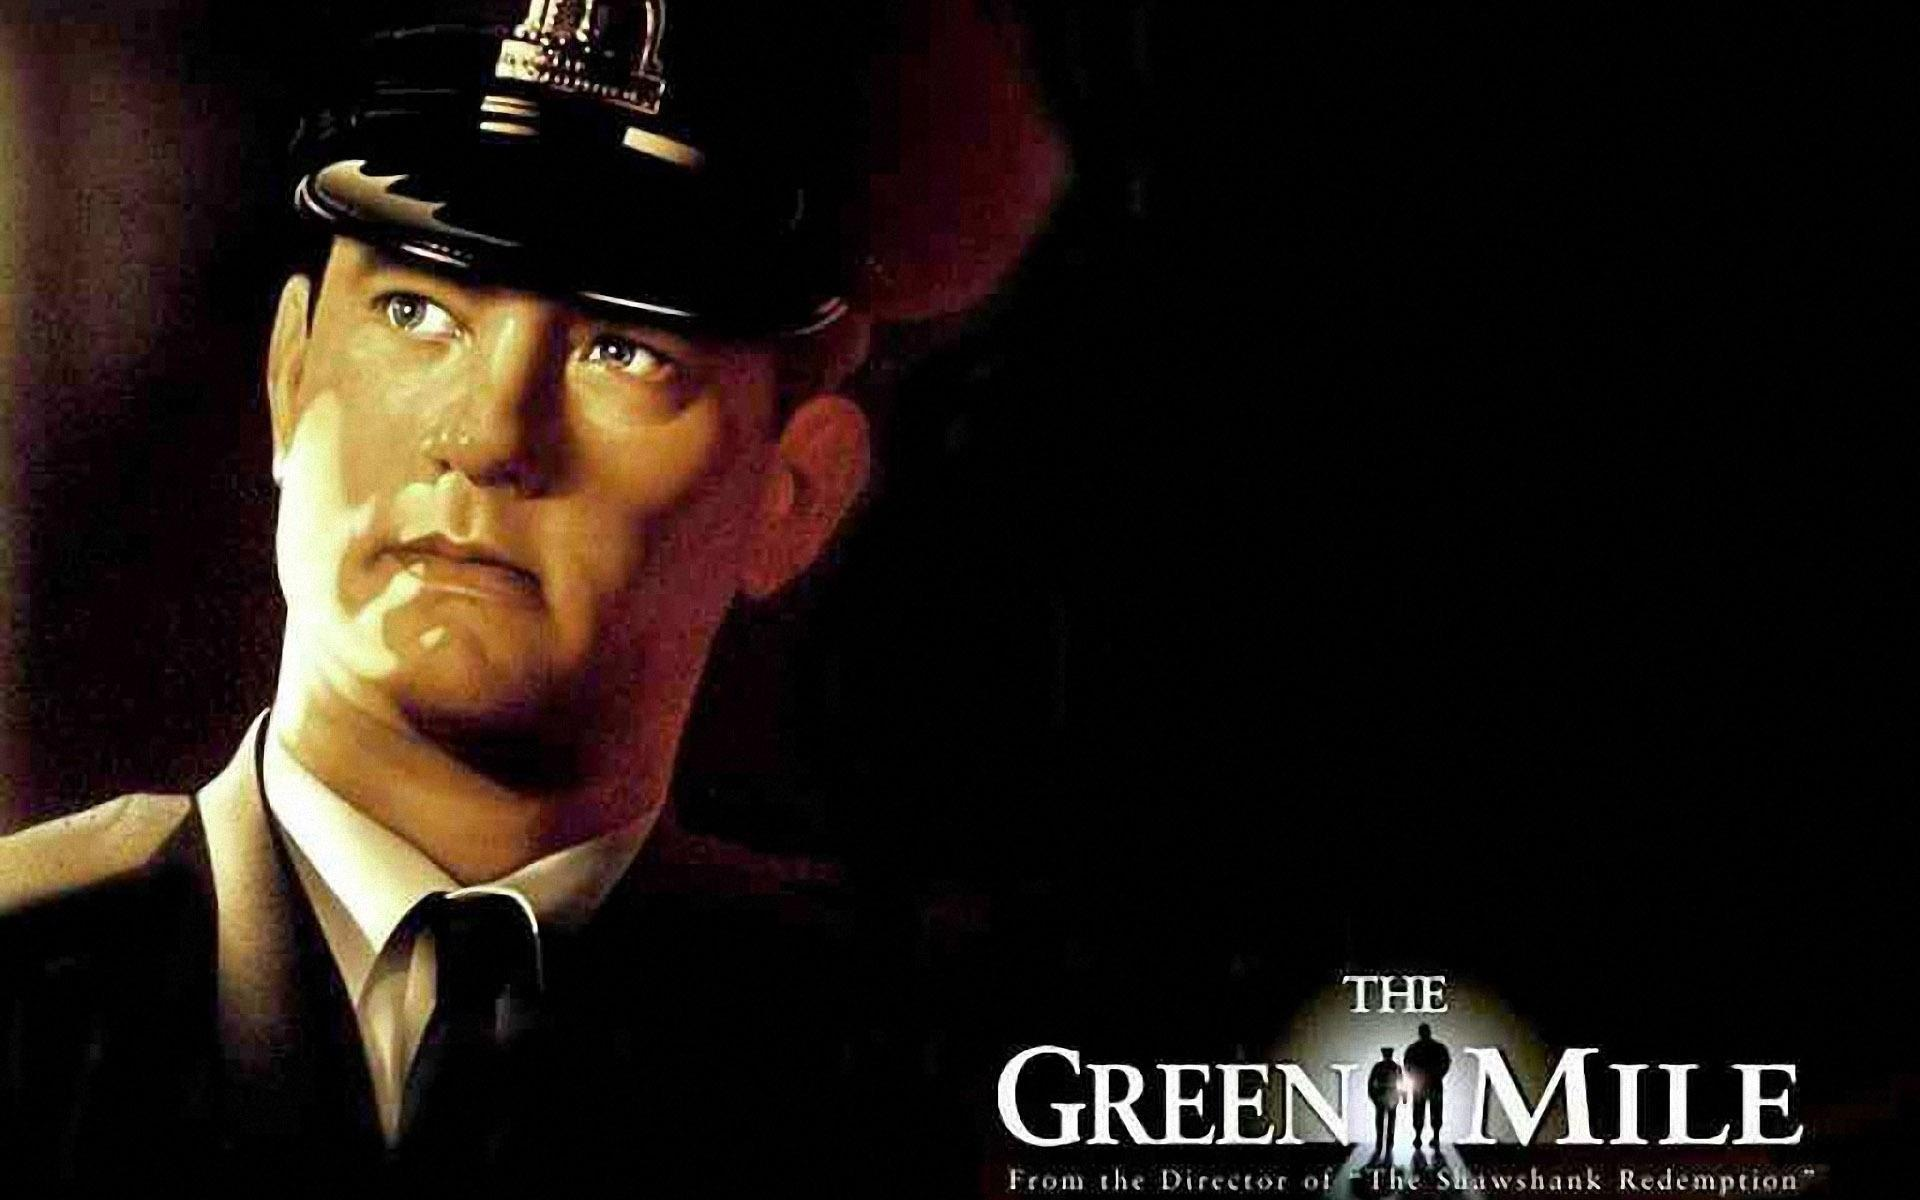 96931 The Green Mile movie wallpaper, Best movies